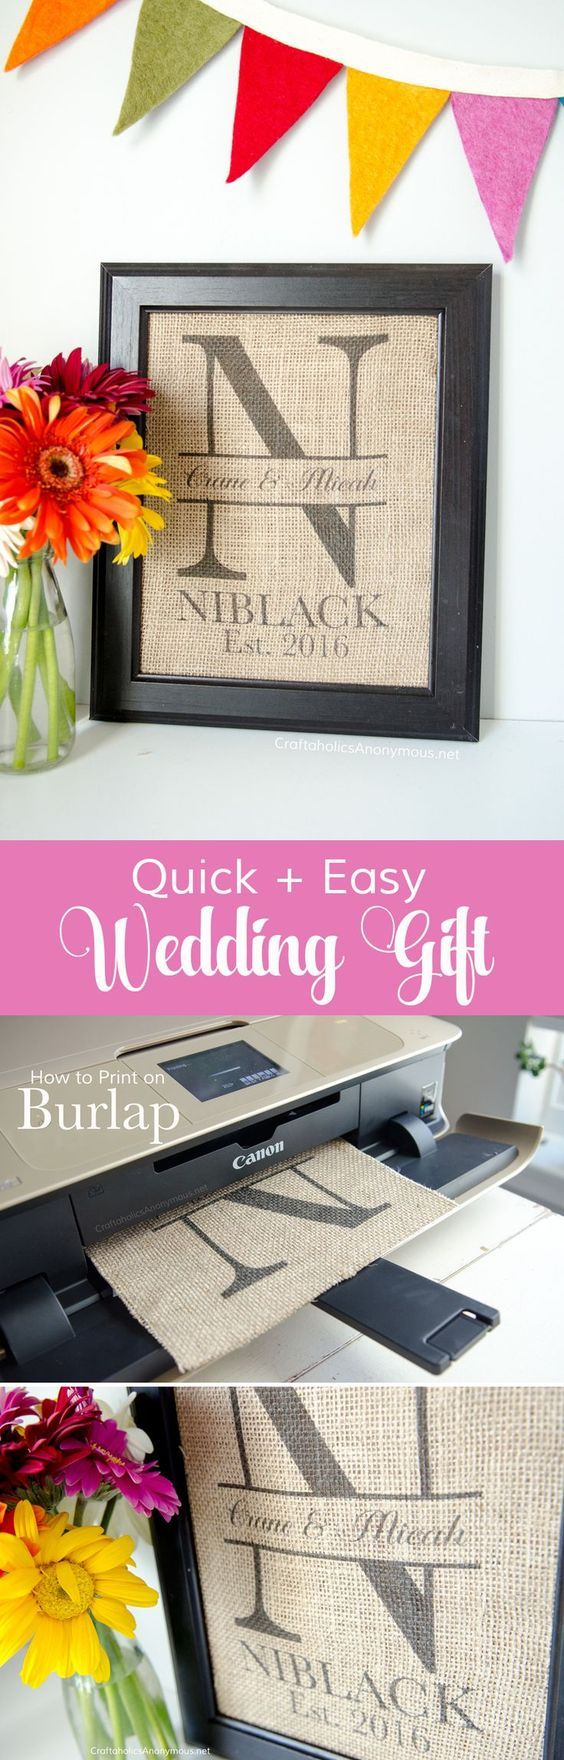 Craftaholics Anonymous®   Spring means wedding. Make beautiful art for the bride and groom to be, with this easy tutorial.